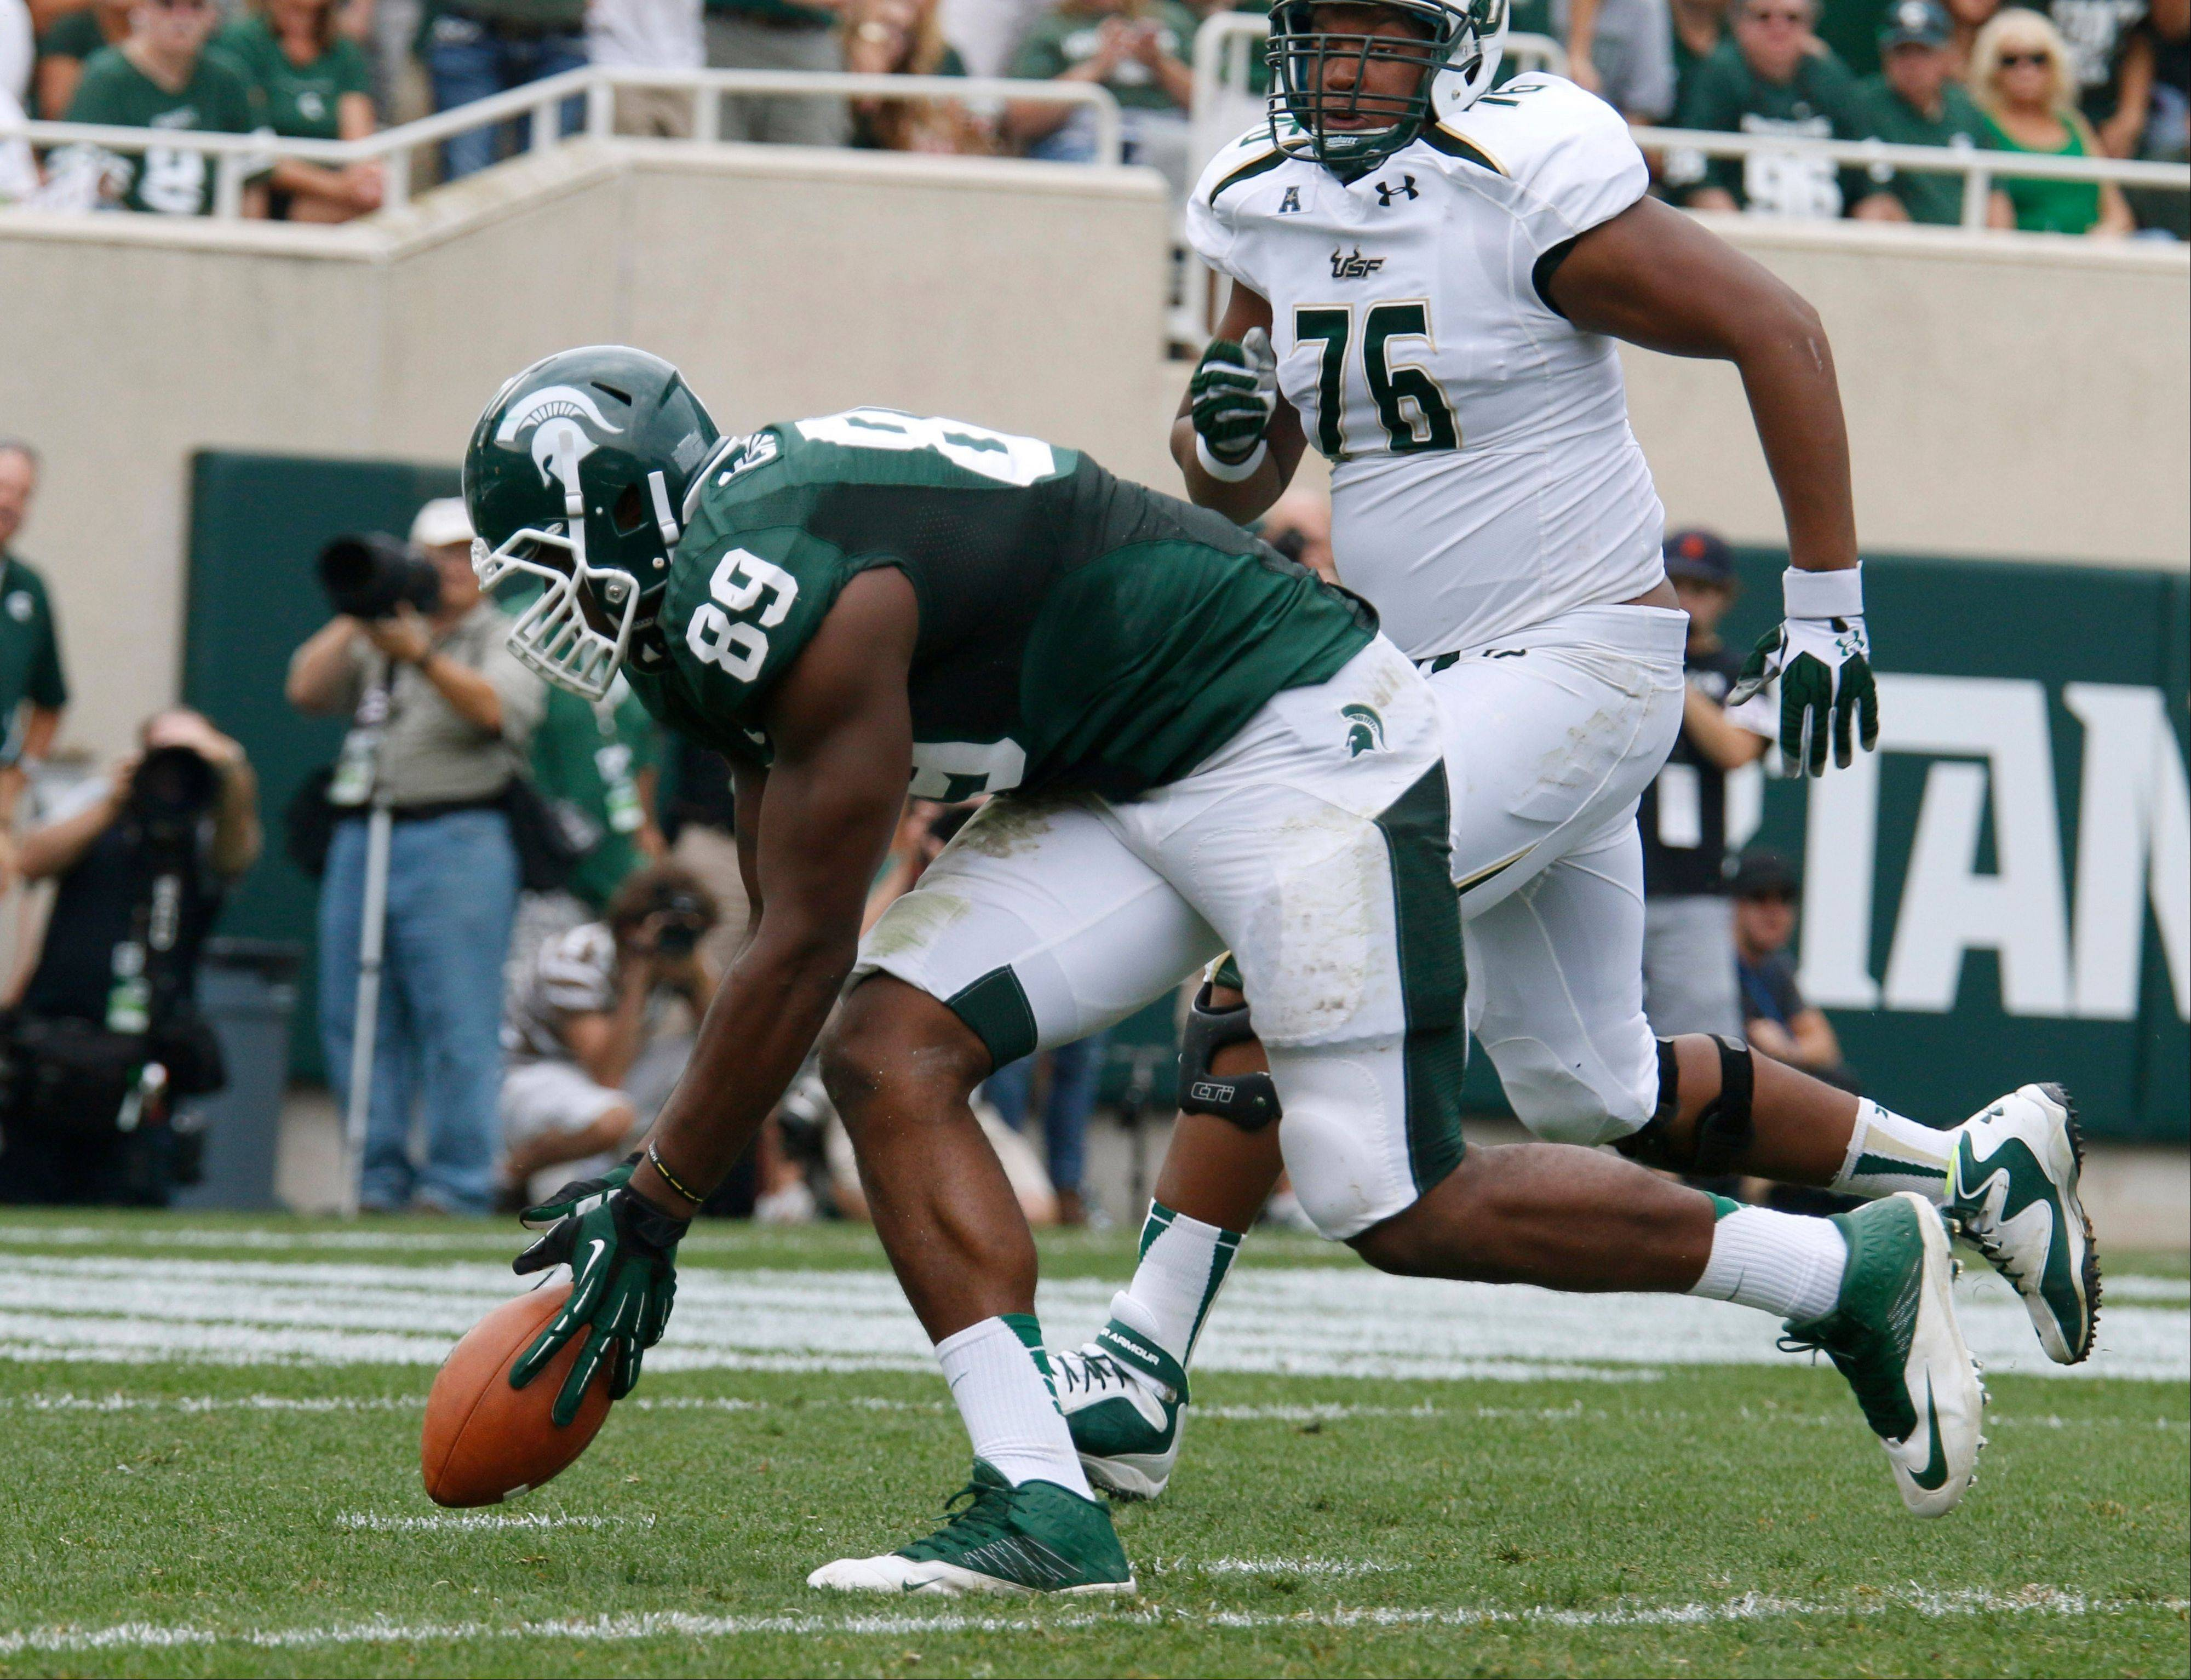 Michigan State's Shilique Calhoun picks up a fumble and returns it for a touchdown in front of South Florida's Darrell Williams during the second quarter Saturday in East Lansing, Mich.